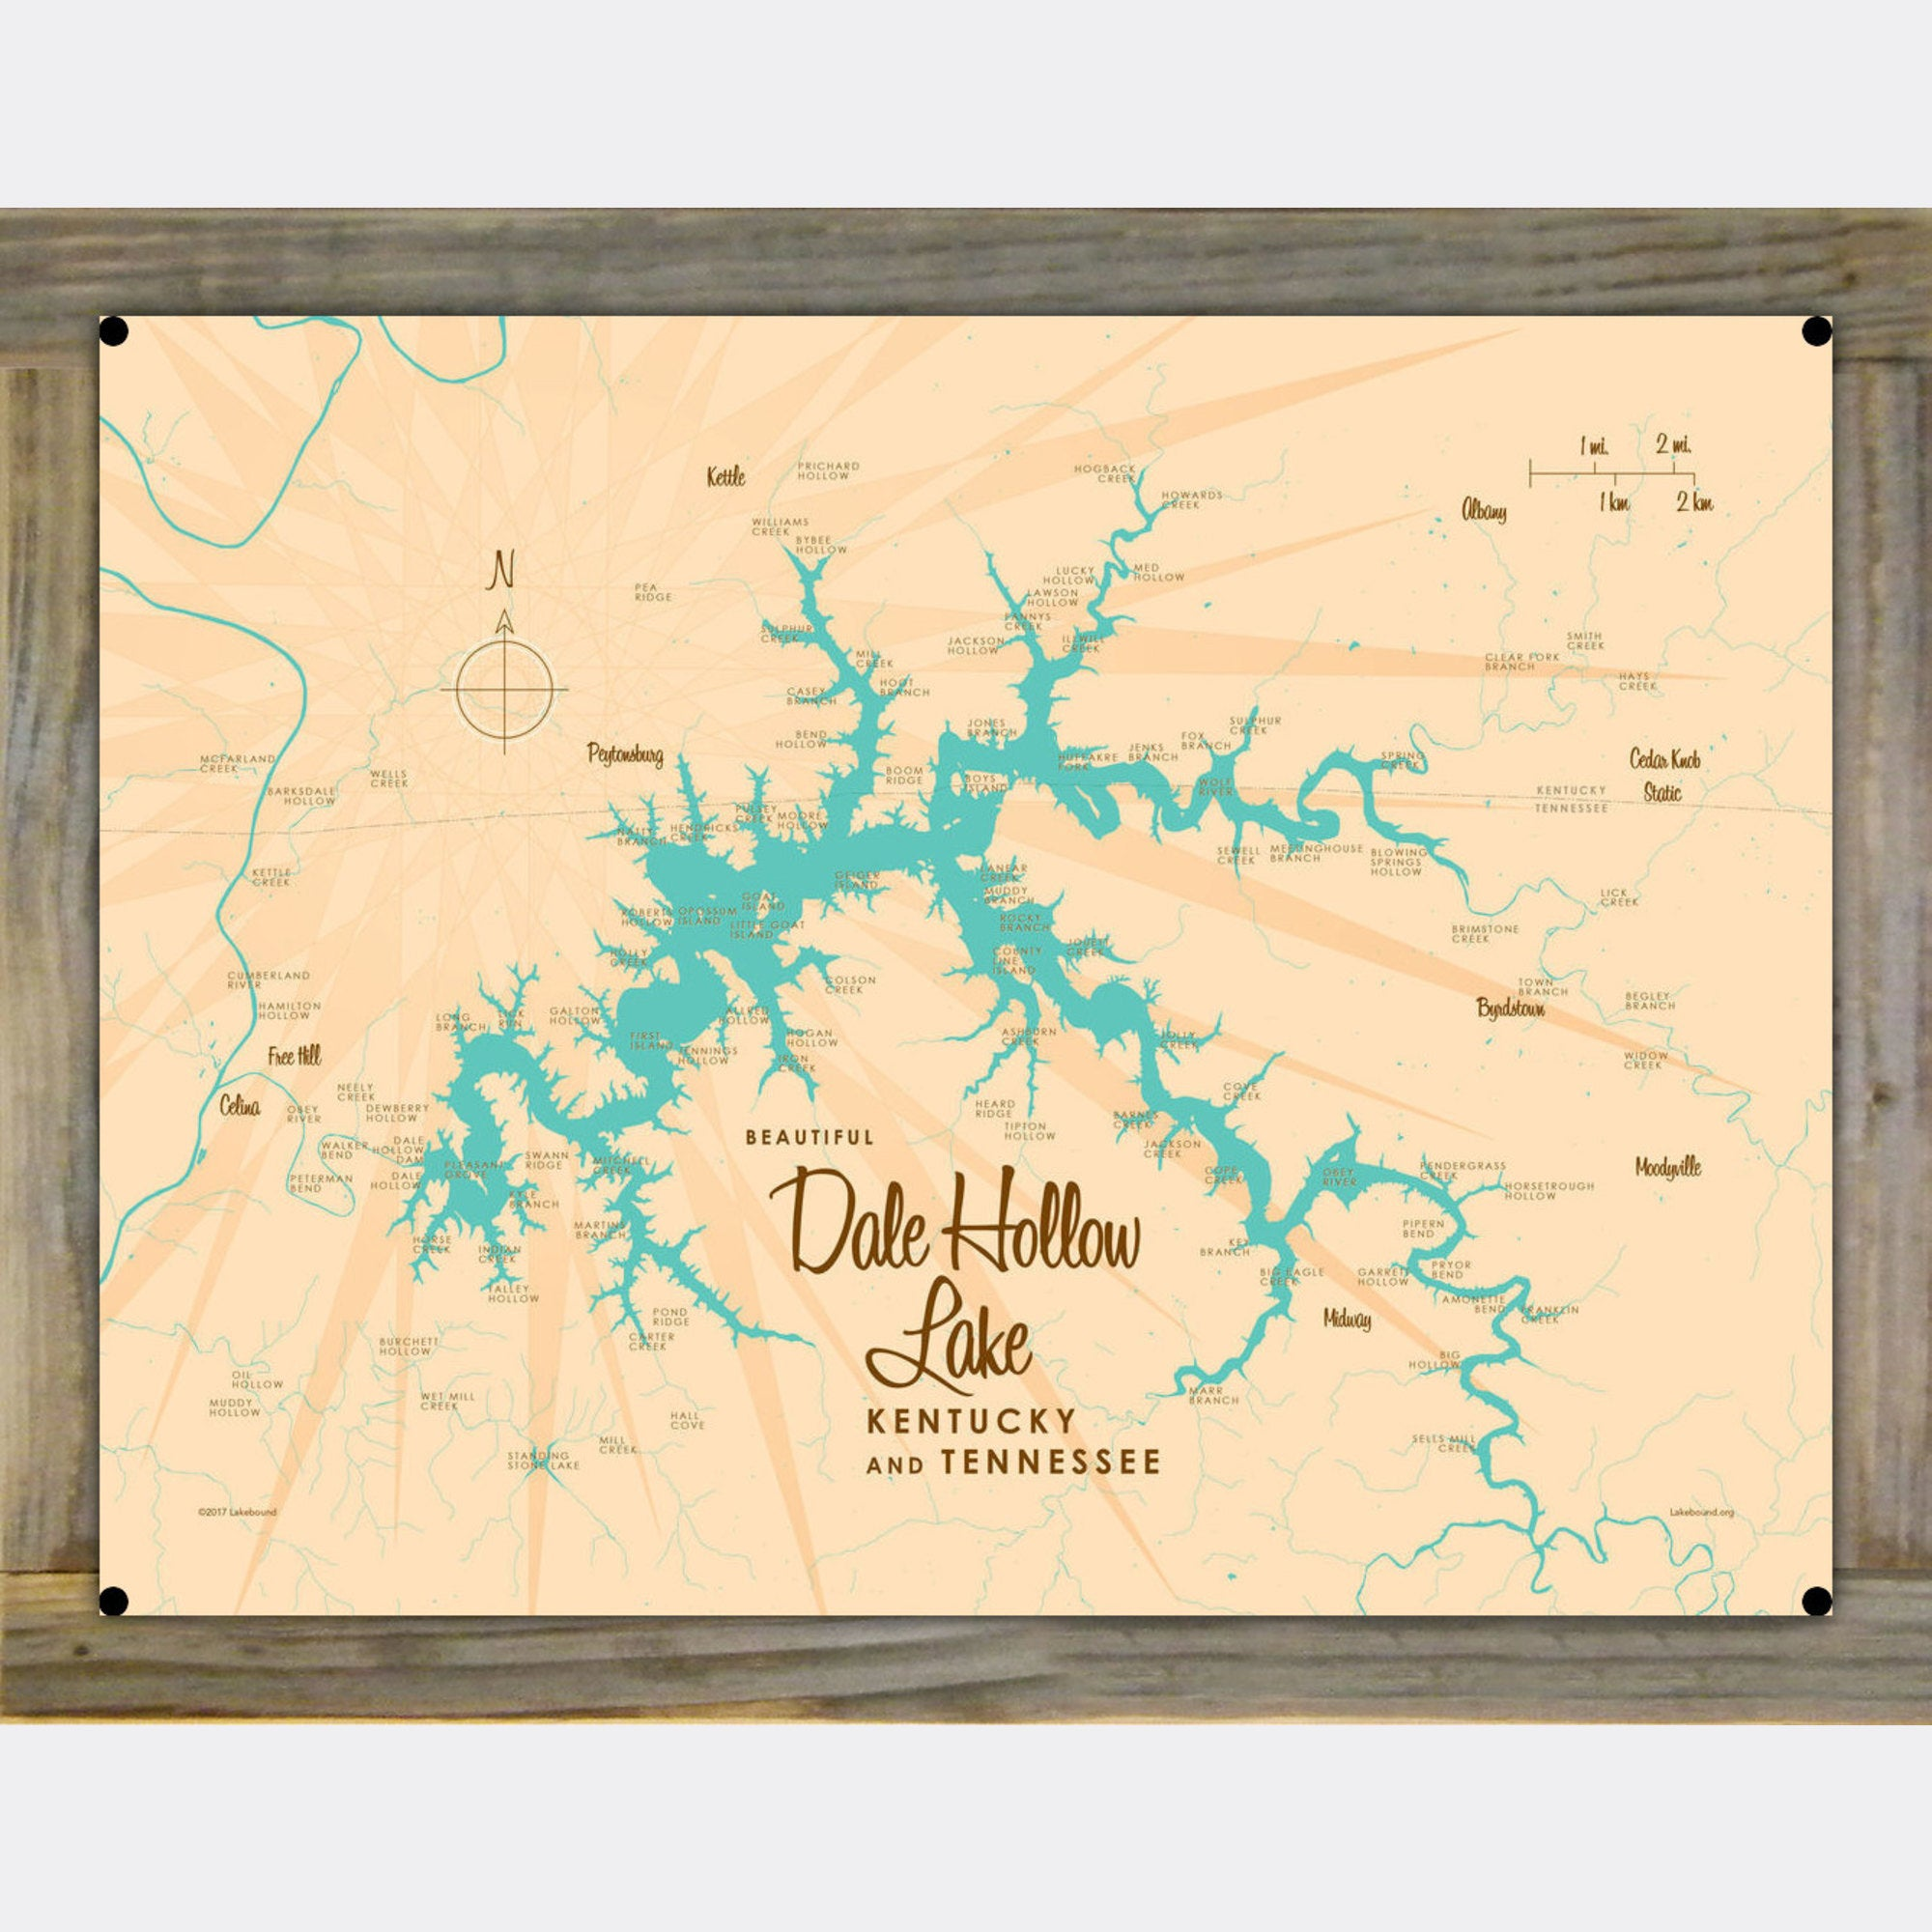 Dale Hollow Lake, Kentucky & Tennessee, Wood-Mounted Metal Sign Map on map of new york, map of pennsylvania, map of alabama, map of oregon, map ohio kentucky, map of idaho, map of florida, map of nashville tn, map of mississippi, map of oklahoma arkansas, map of ohio, map of louisiana, map of north carolina, map of montana, map of virginia, map of south carolina, map of washington state, map of georgia, map virginia kentucky, map of texas,